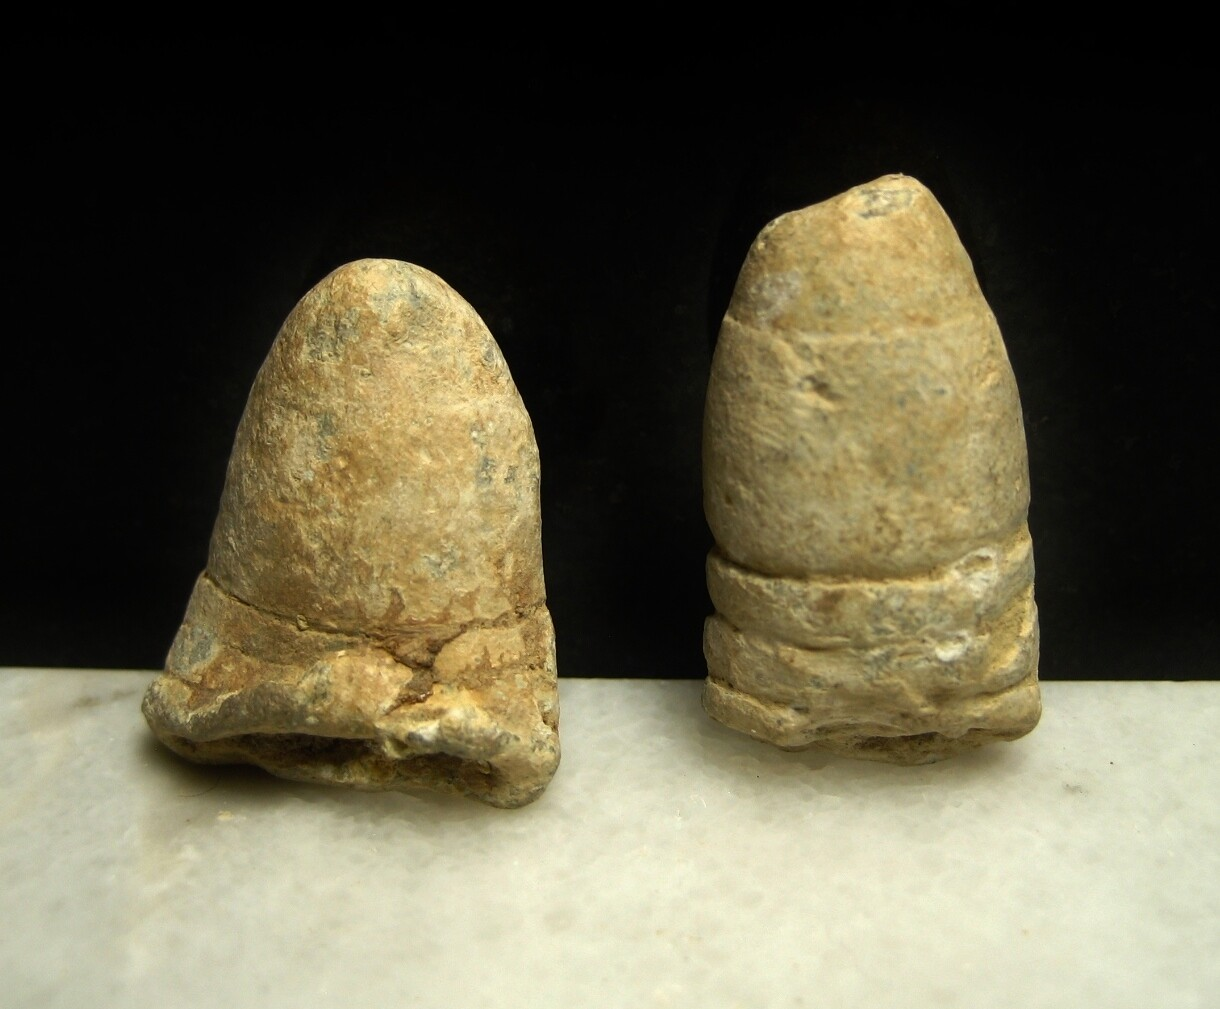 JUST ADDED ON 7/23 - THE BATTLE OF FREDERICKSBURG / AREA OF MEADE'S ATTACK - Two Fired Bullets with Light Ram Rod Marks - found April, 1971